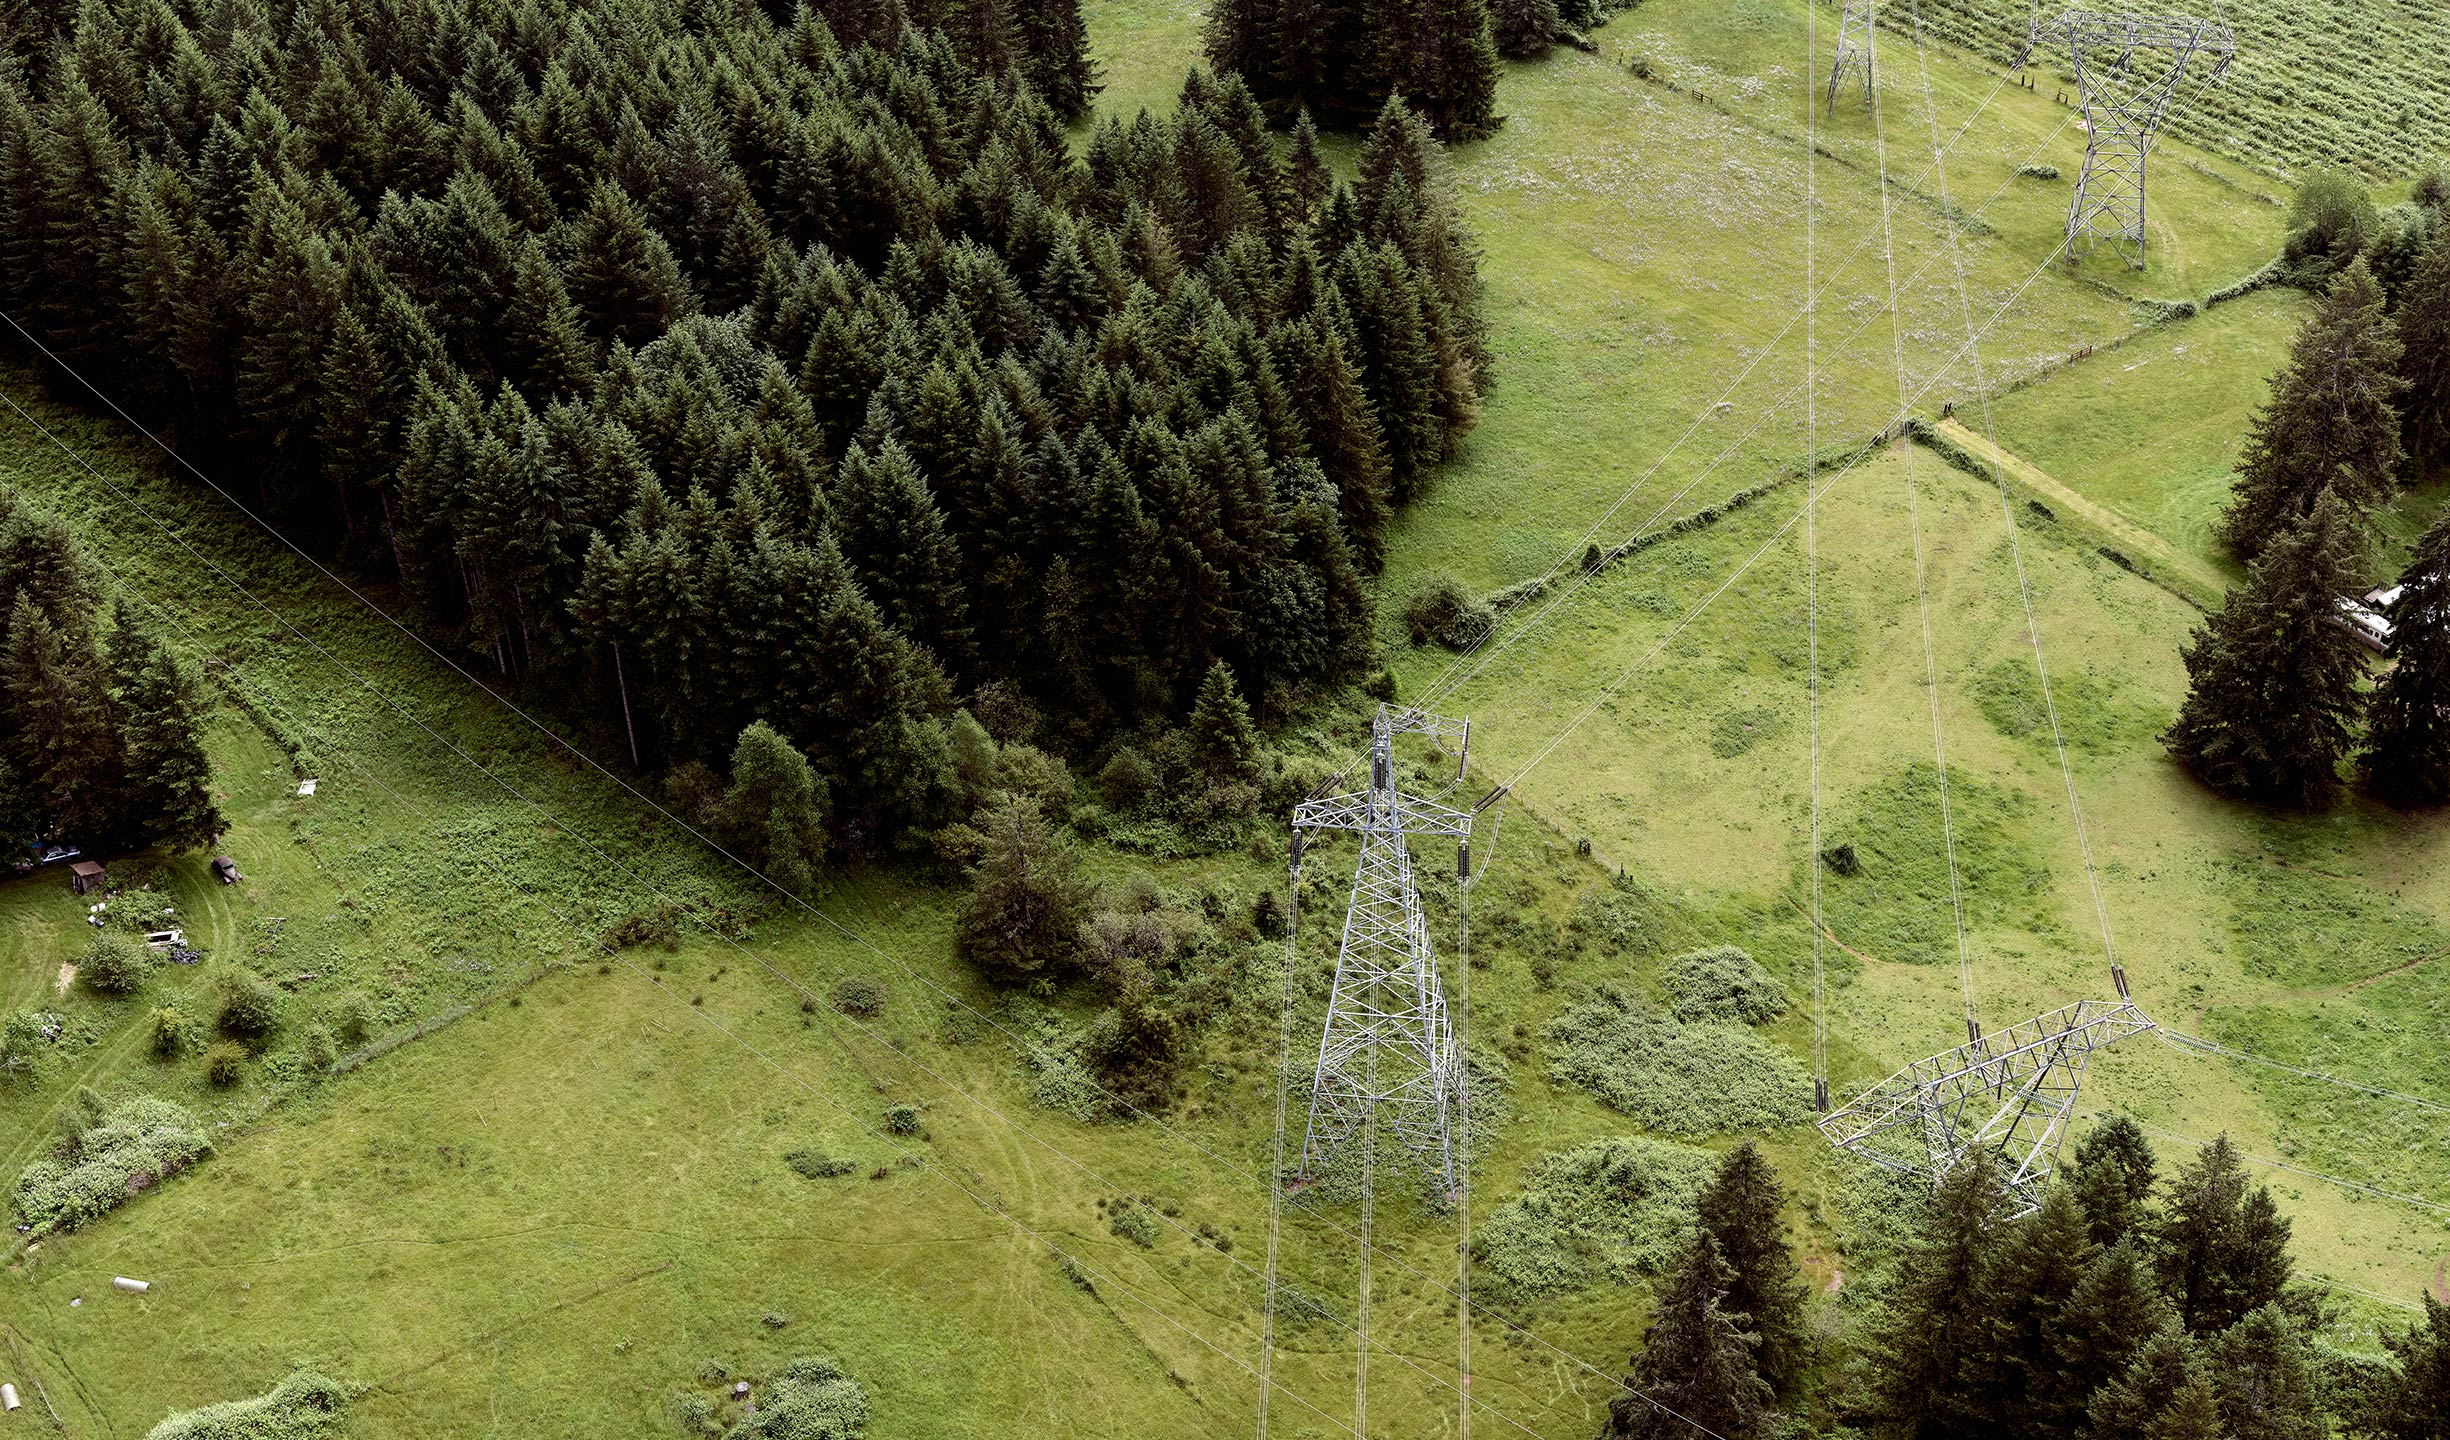 power line inspection | Oblique Imagery Quantum NV5 and Phase One case study